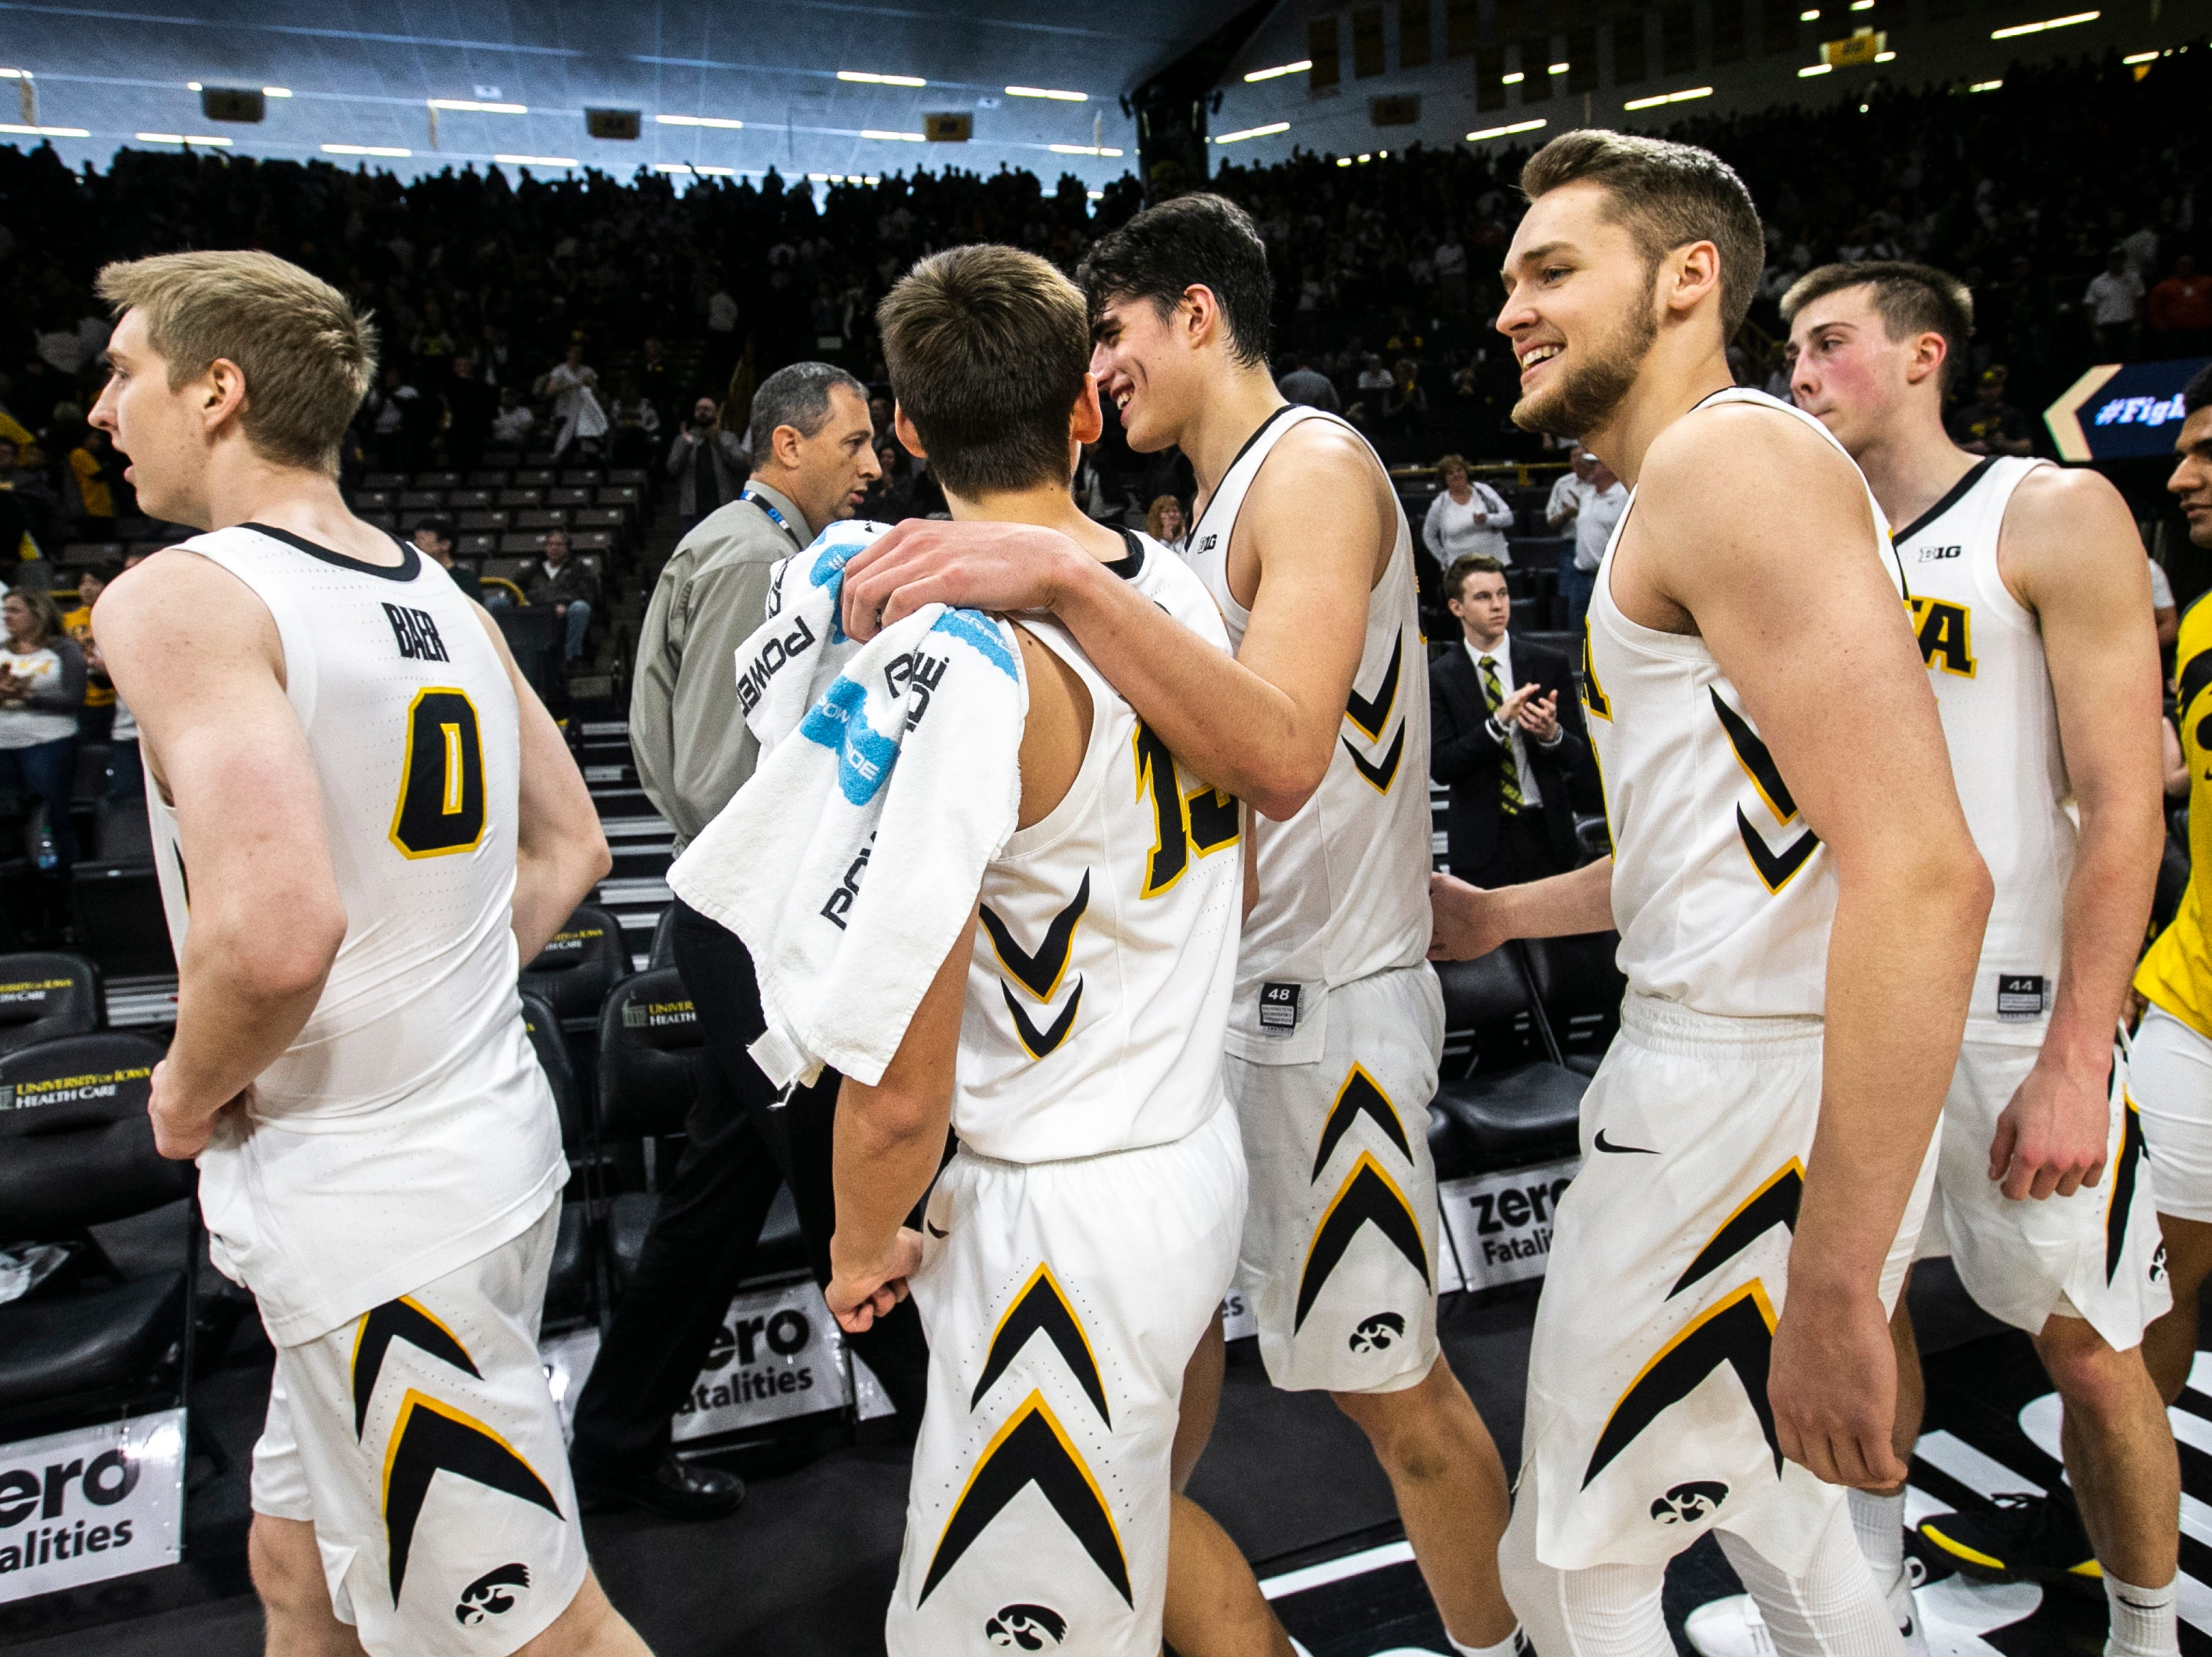 Iowa forward Luka Garza (55) talks with Iowa guard Austin Ash (13) after a NCAA Big Ten Conference men's basketball game on Sunday, Jan. 20, 2019, at Carver-Hawkeye Arena in Iowa City, Iowa.